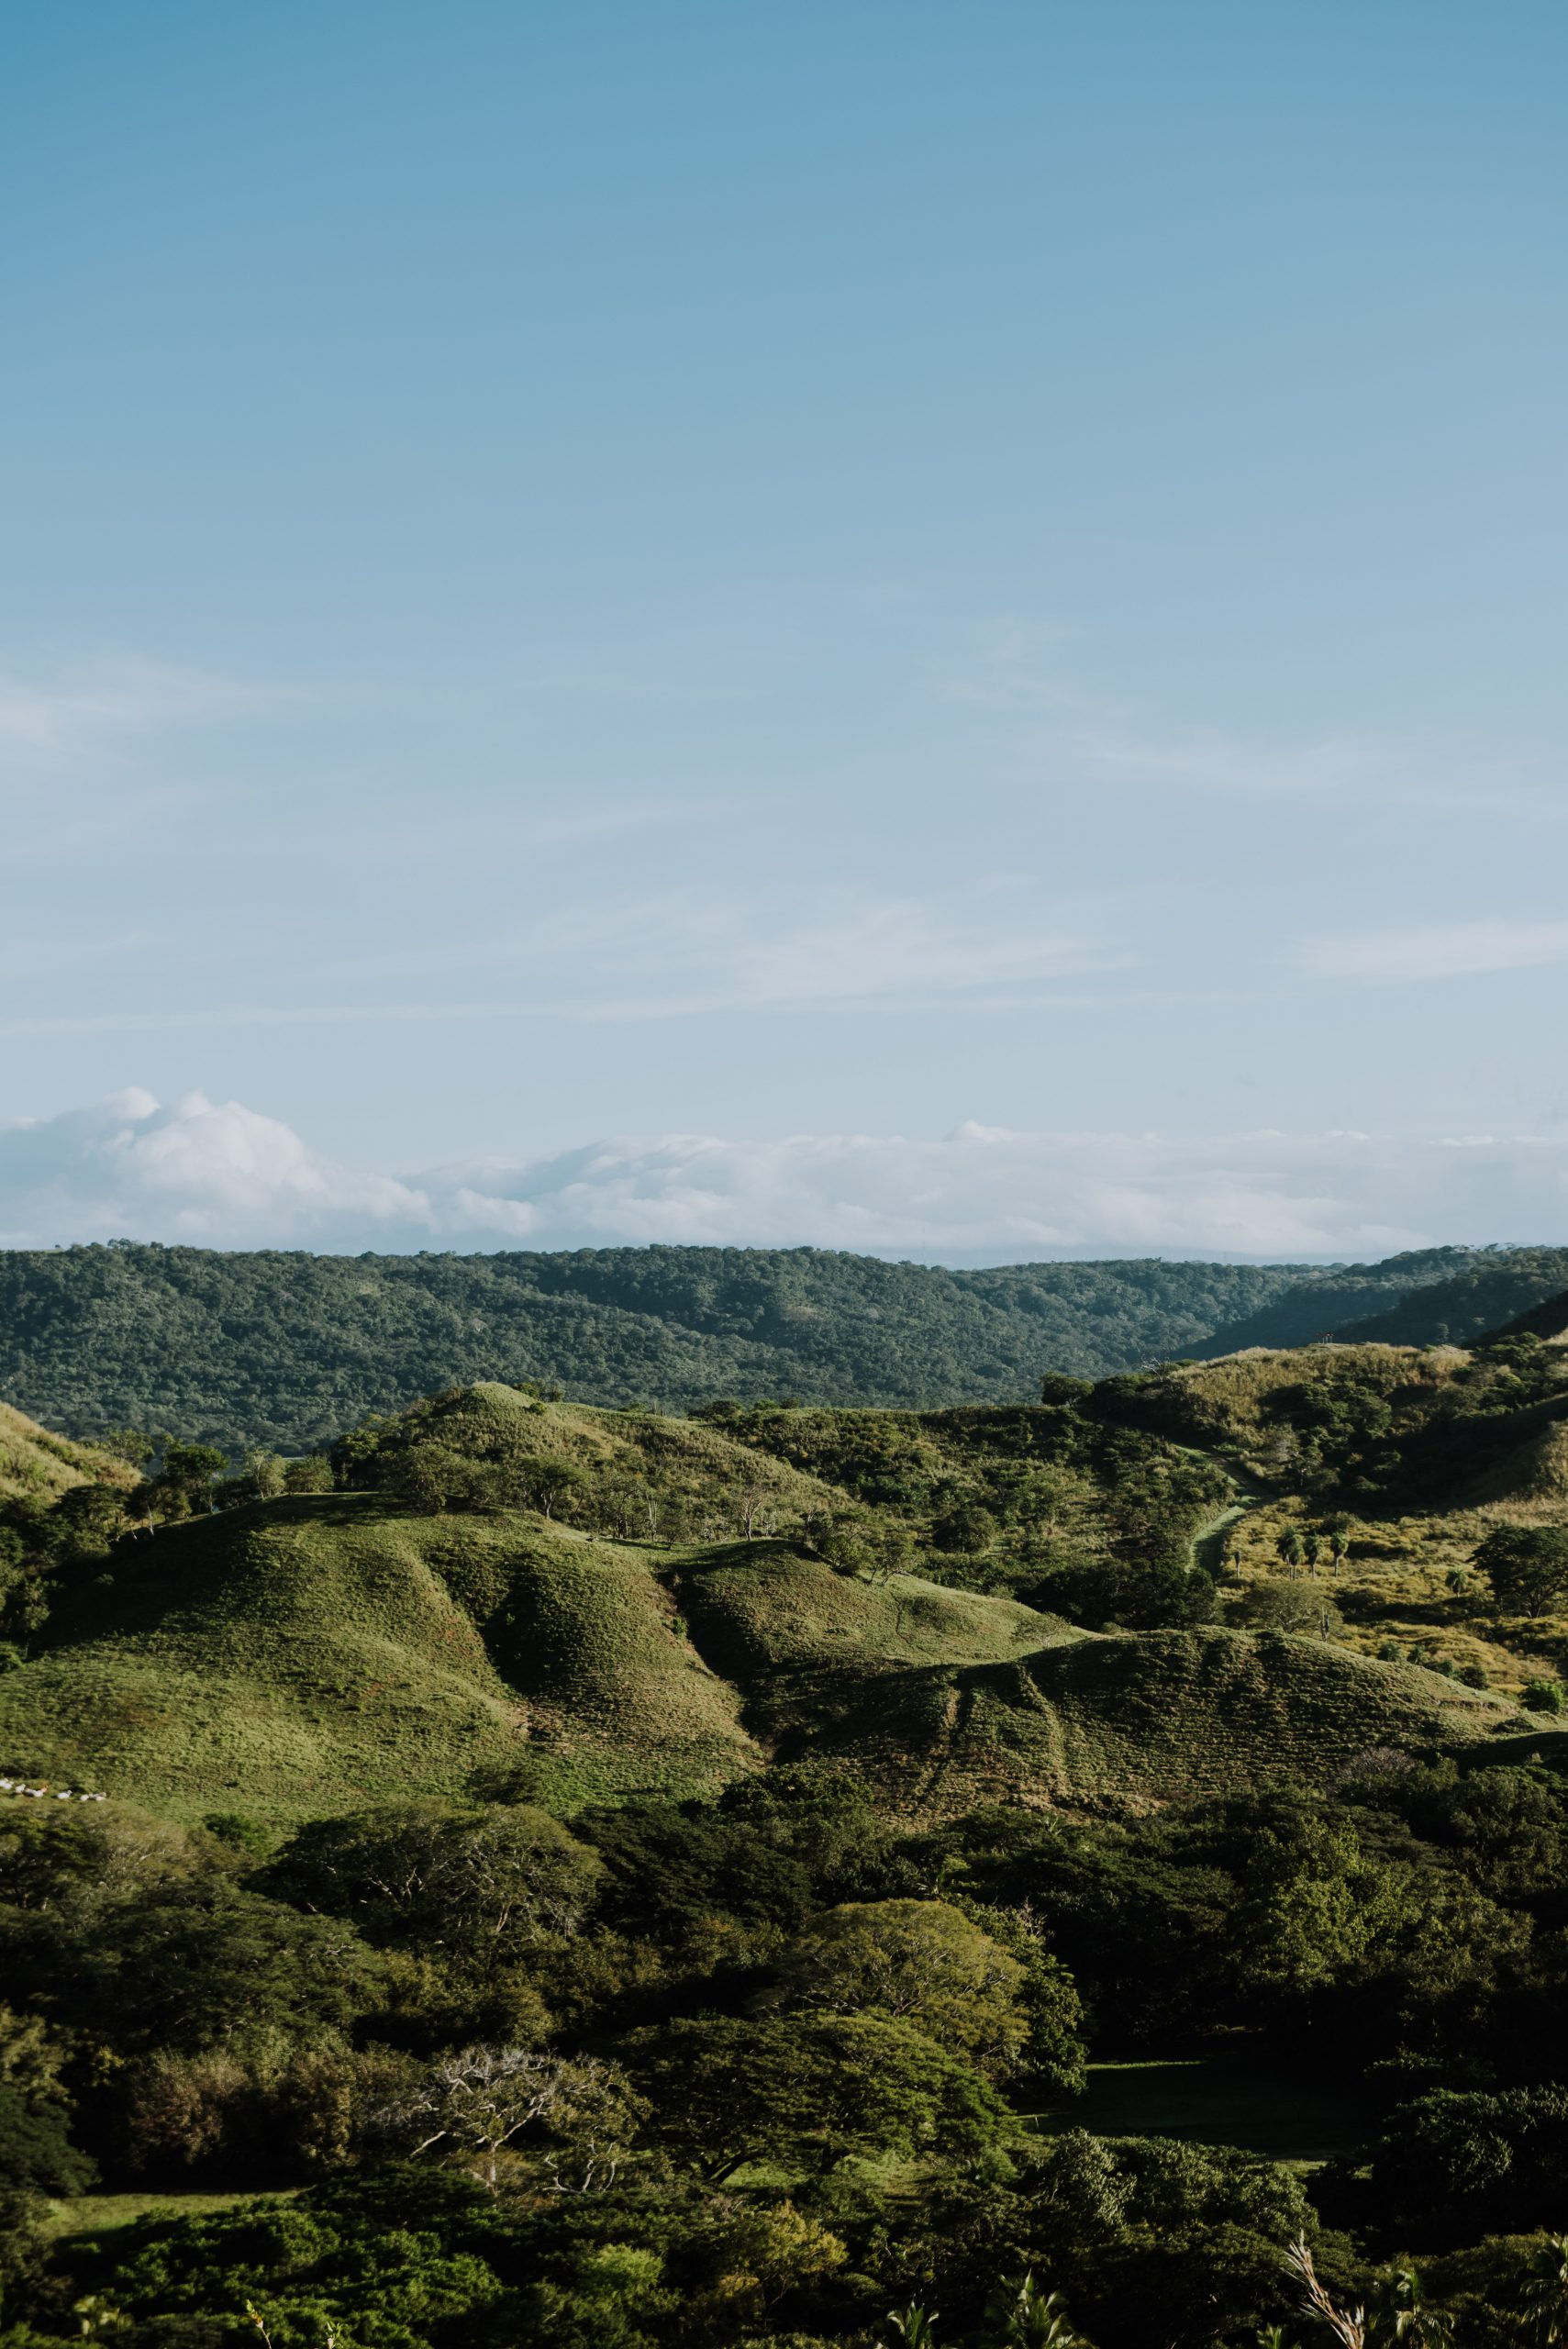 the lush mountainous landscape of costa rica